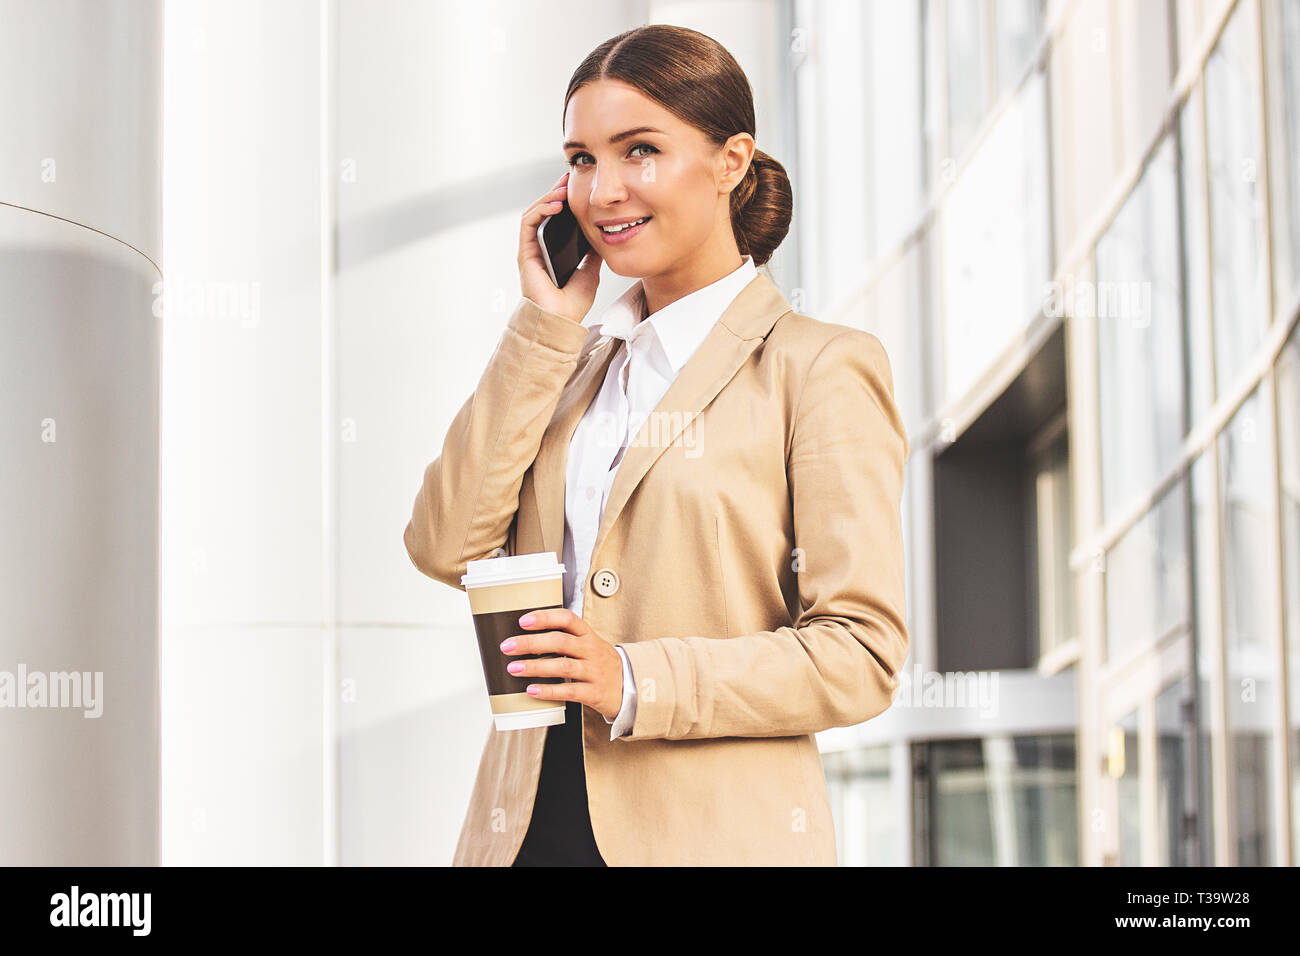 fed1d22f39a Always On Phone Stock Photos   Always On Phone Stock Images - Alamy